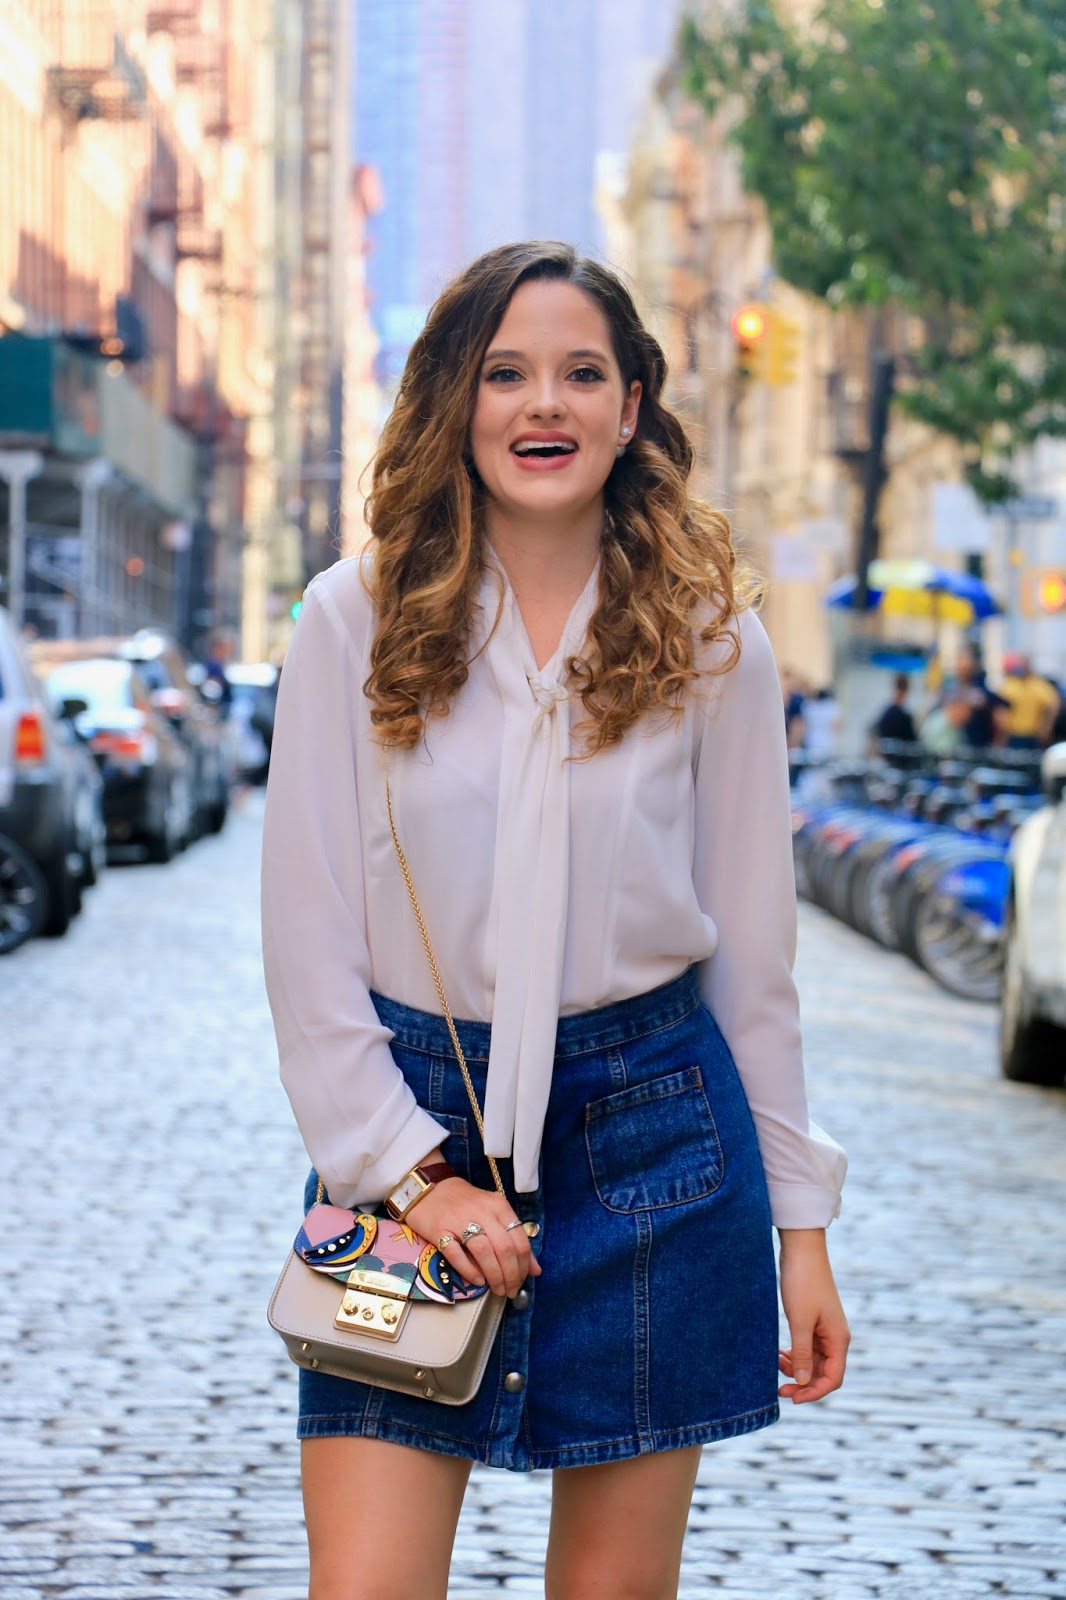 Fashion blogger Kathleen Harper showing off fall work outfit ideas